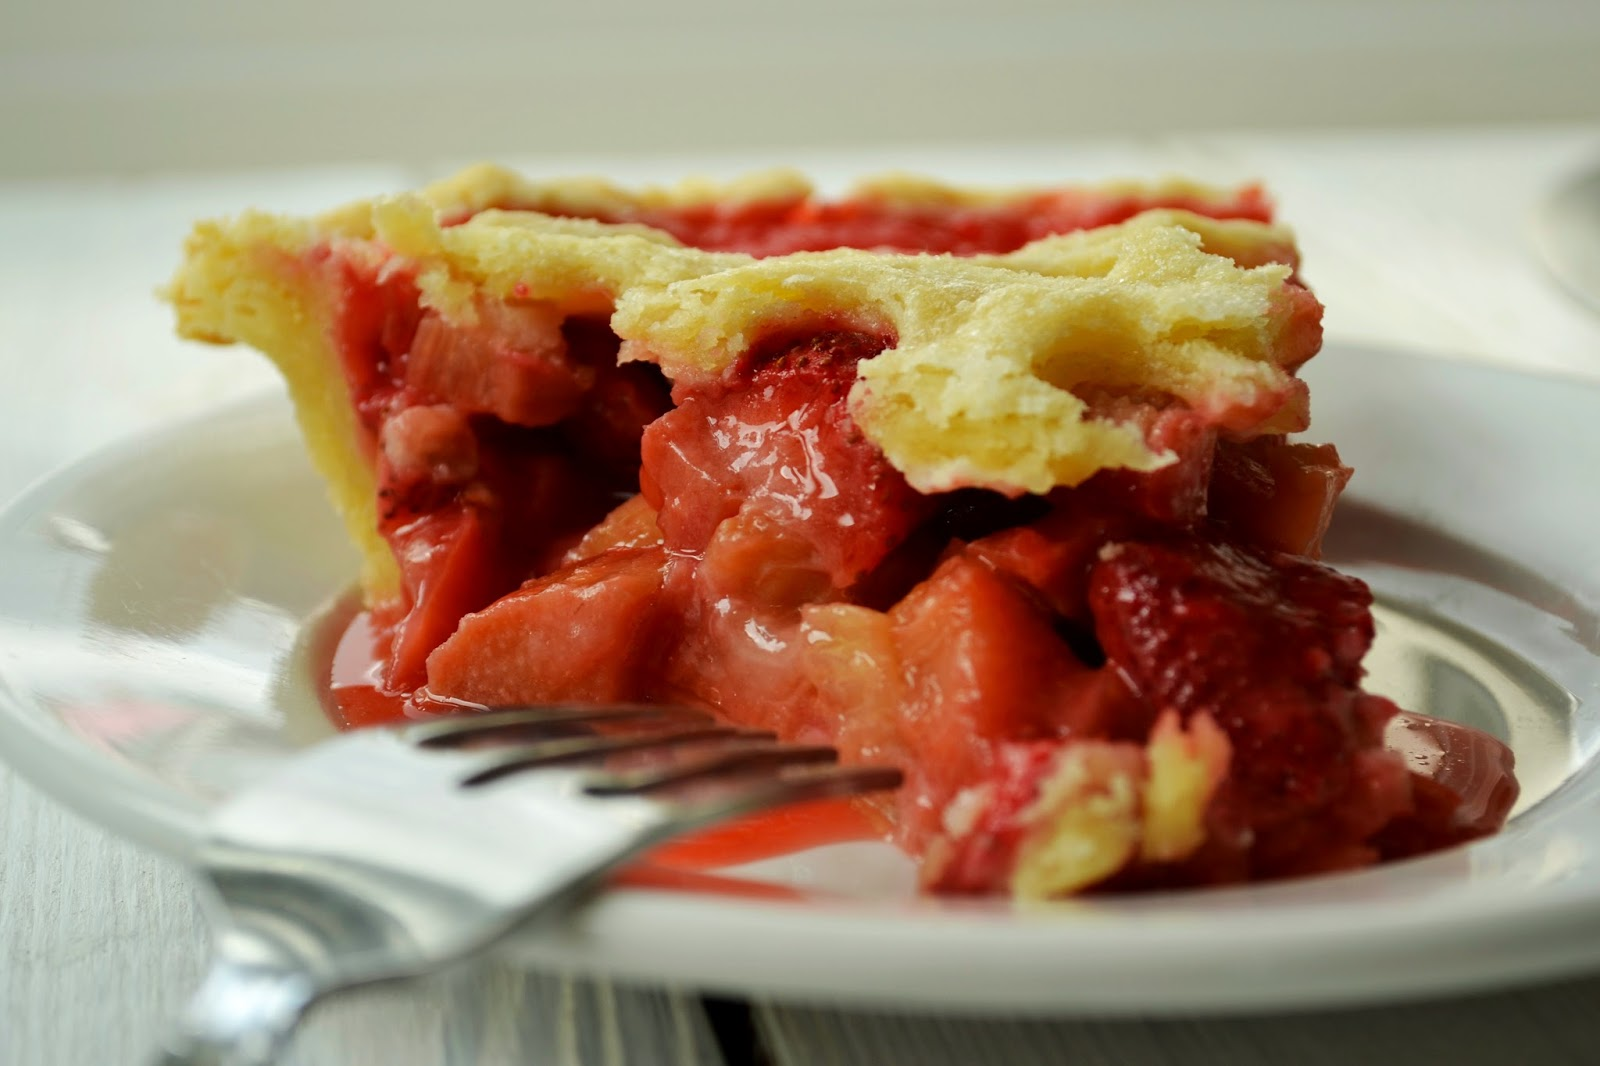 Family Feedbag: Strawberry rhubarb pie